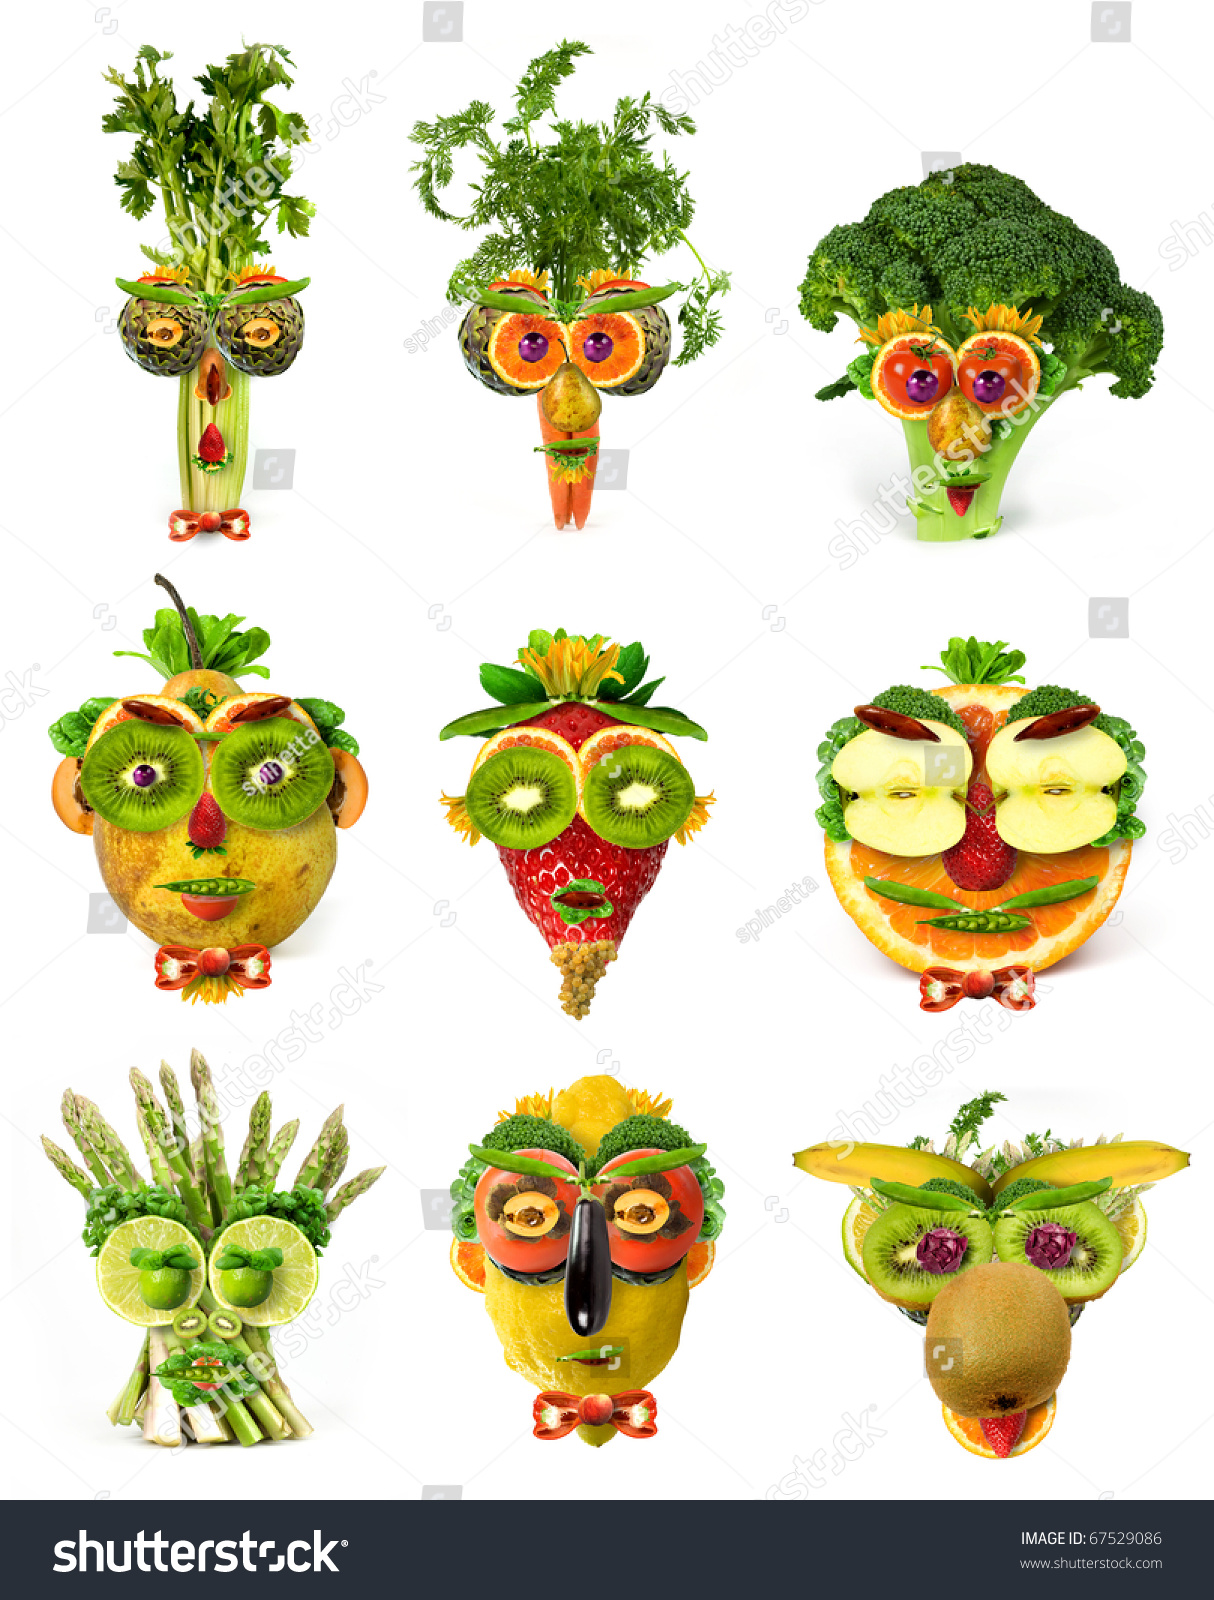 Image result for vegetables faces